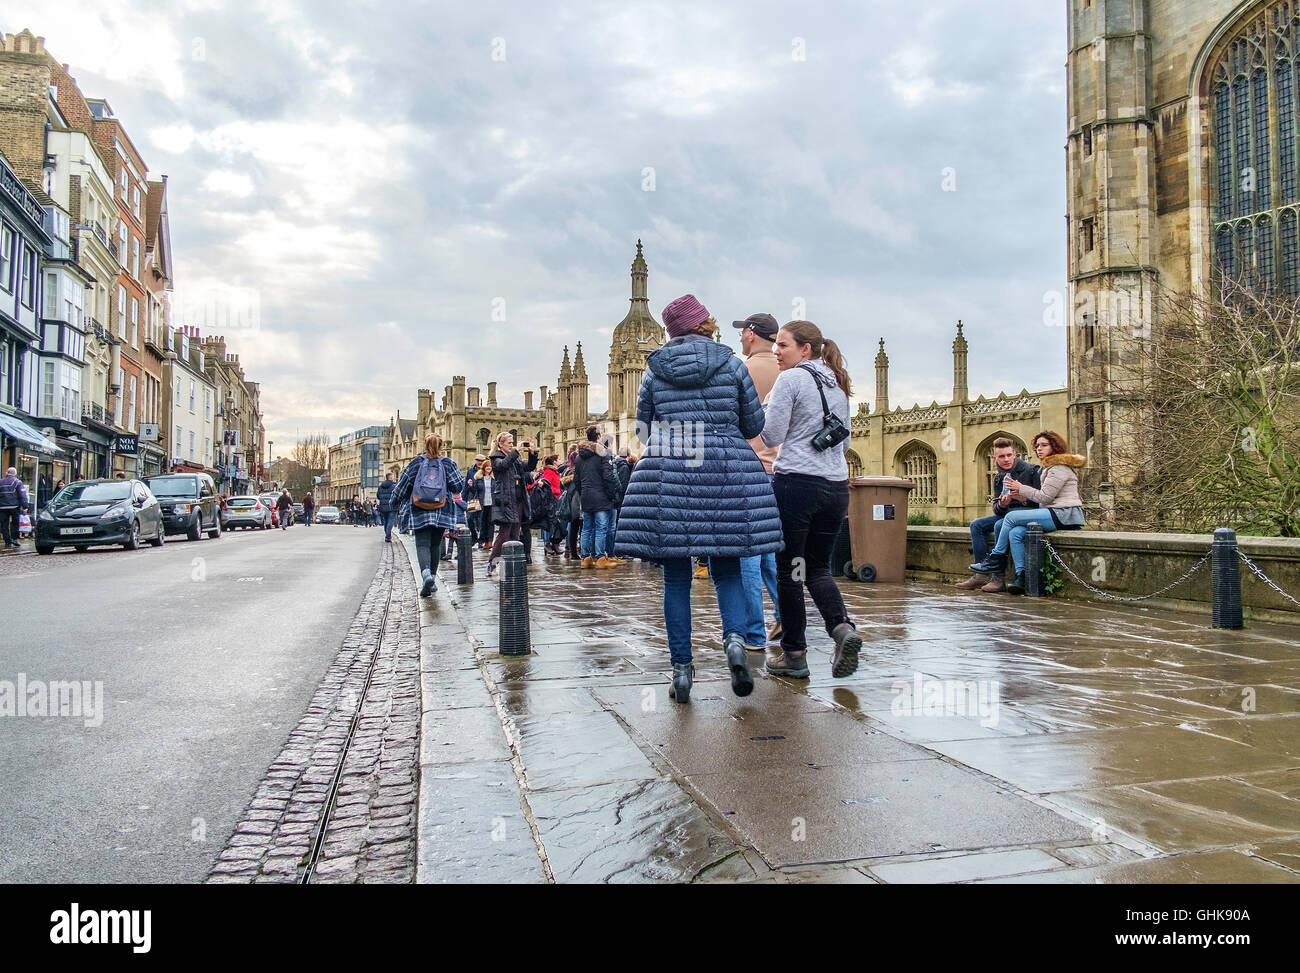 View of Kings Parade Cambridge with Shoppers and sightseers. - Stock Image